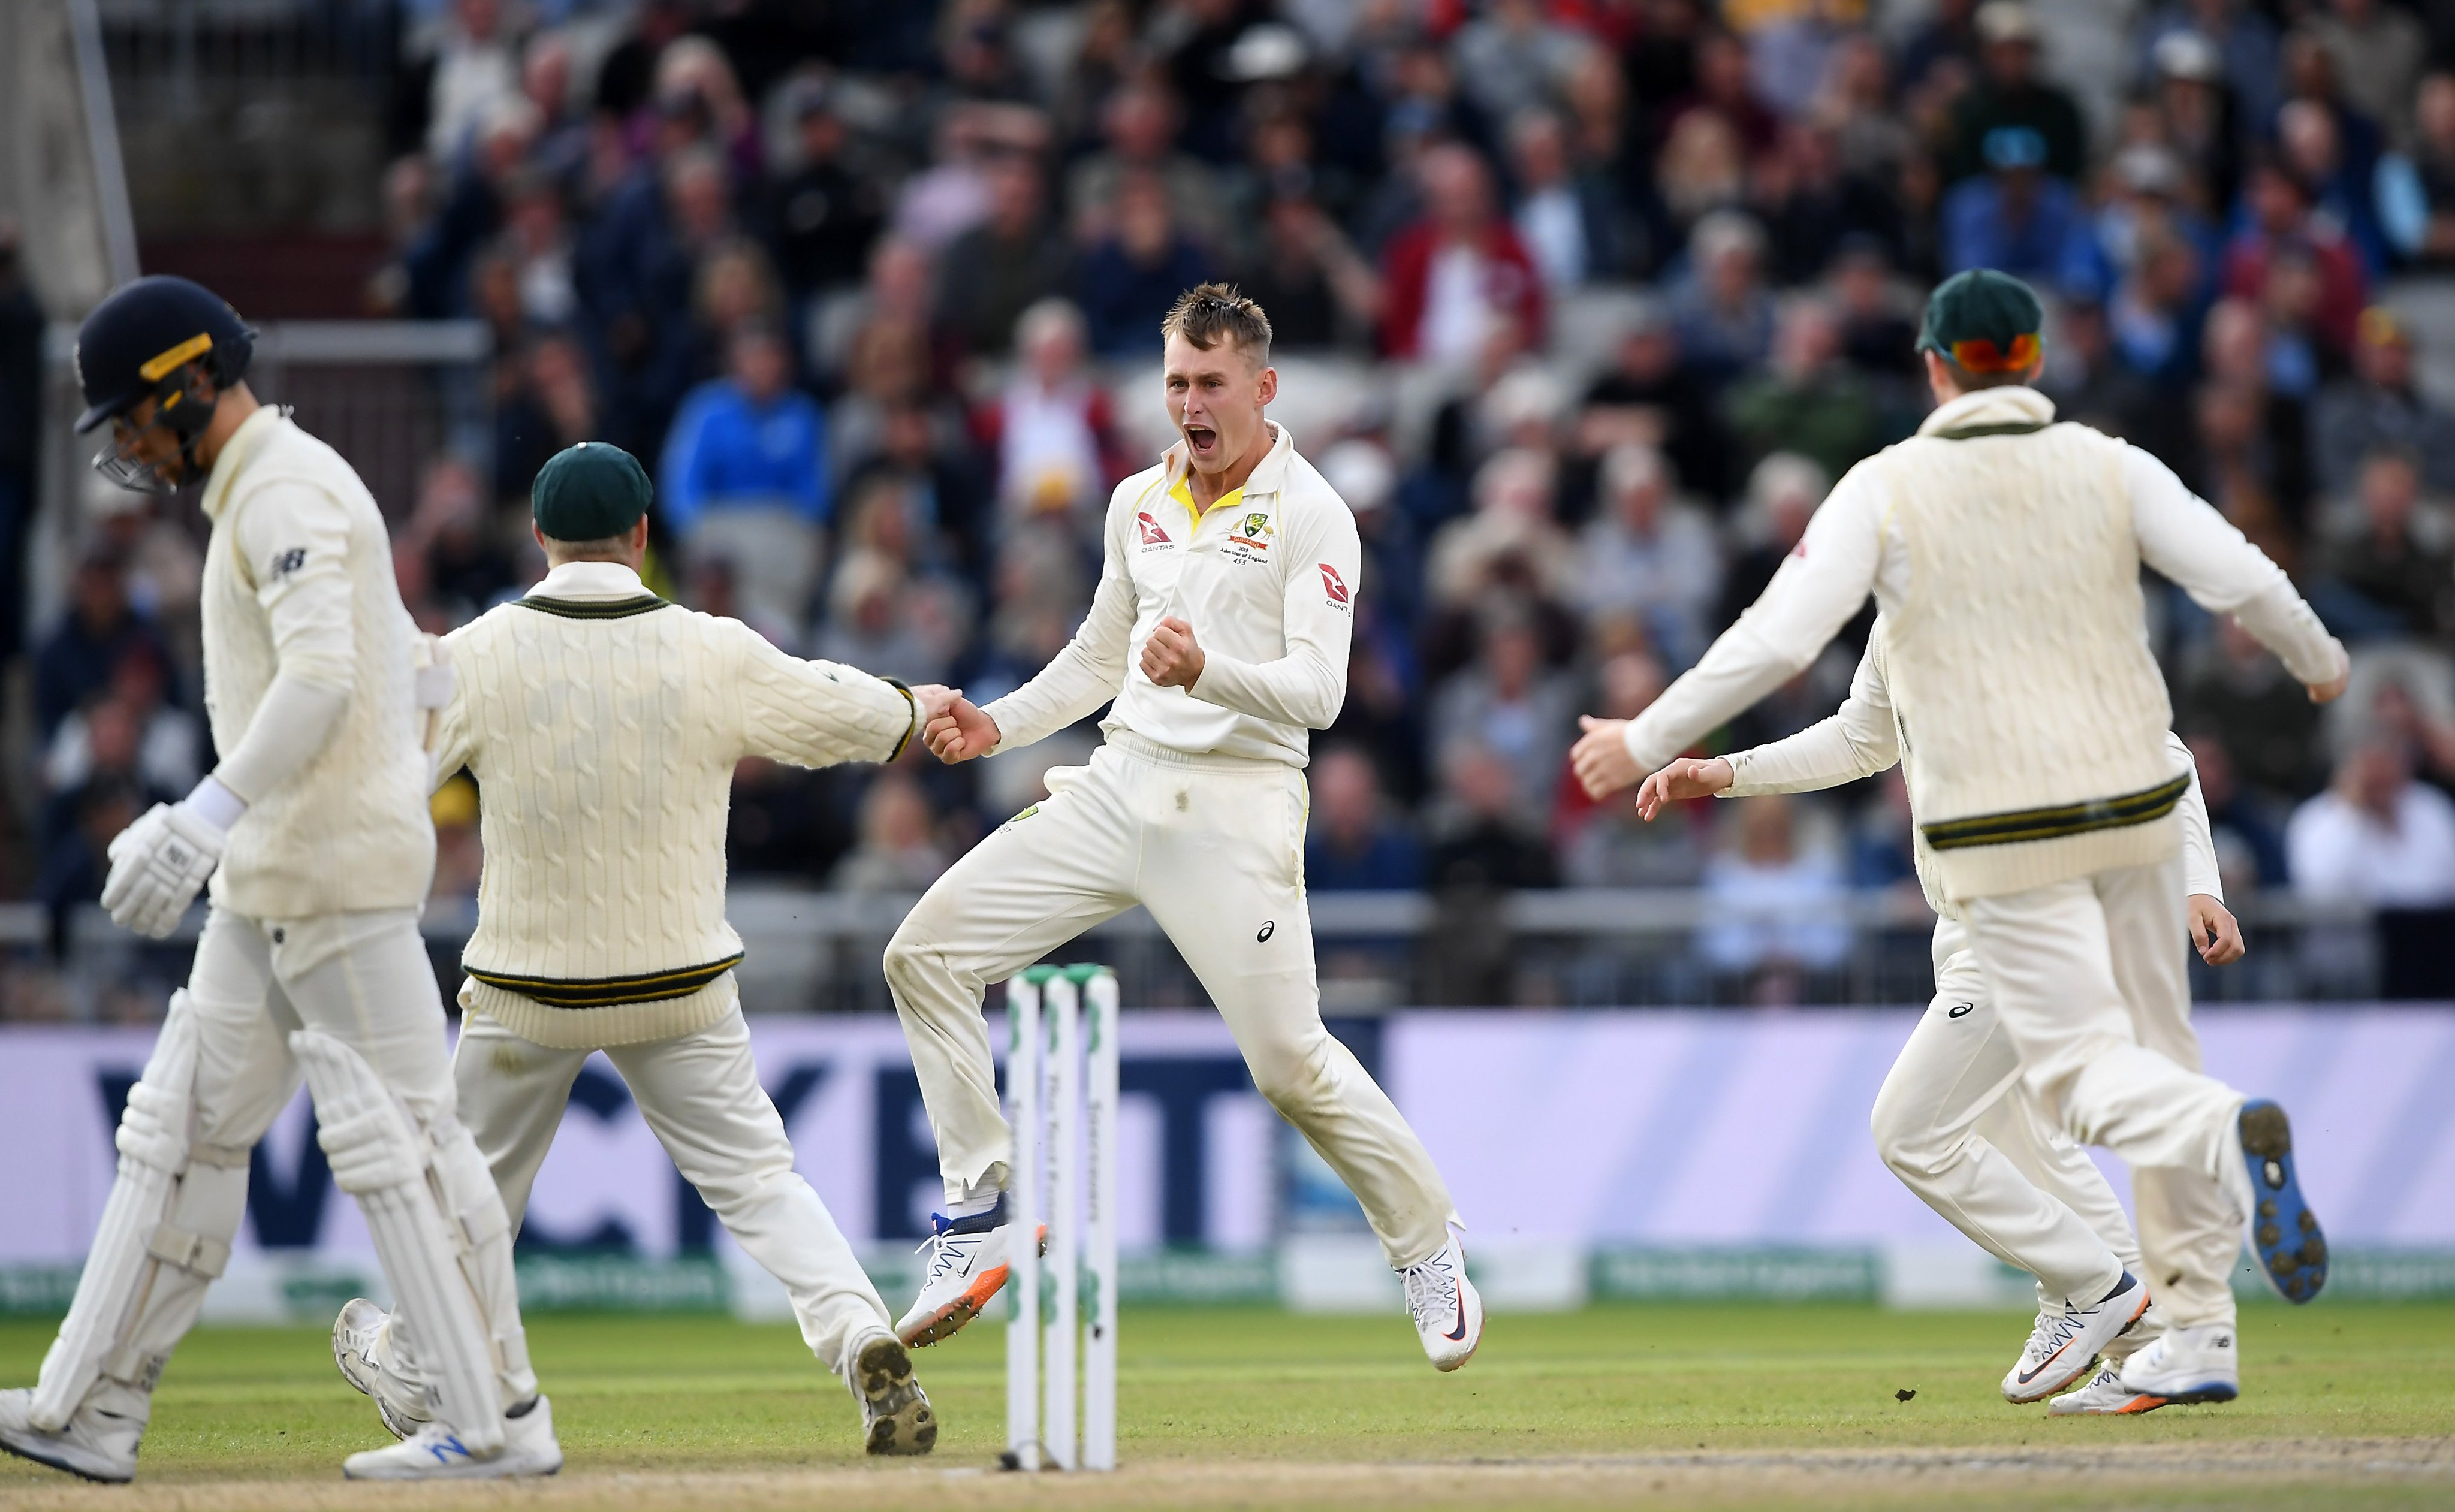 Cricket-Australia likely to be unchanged for third test, says Paine